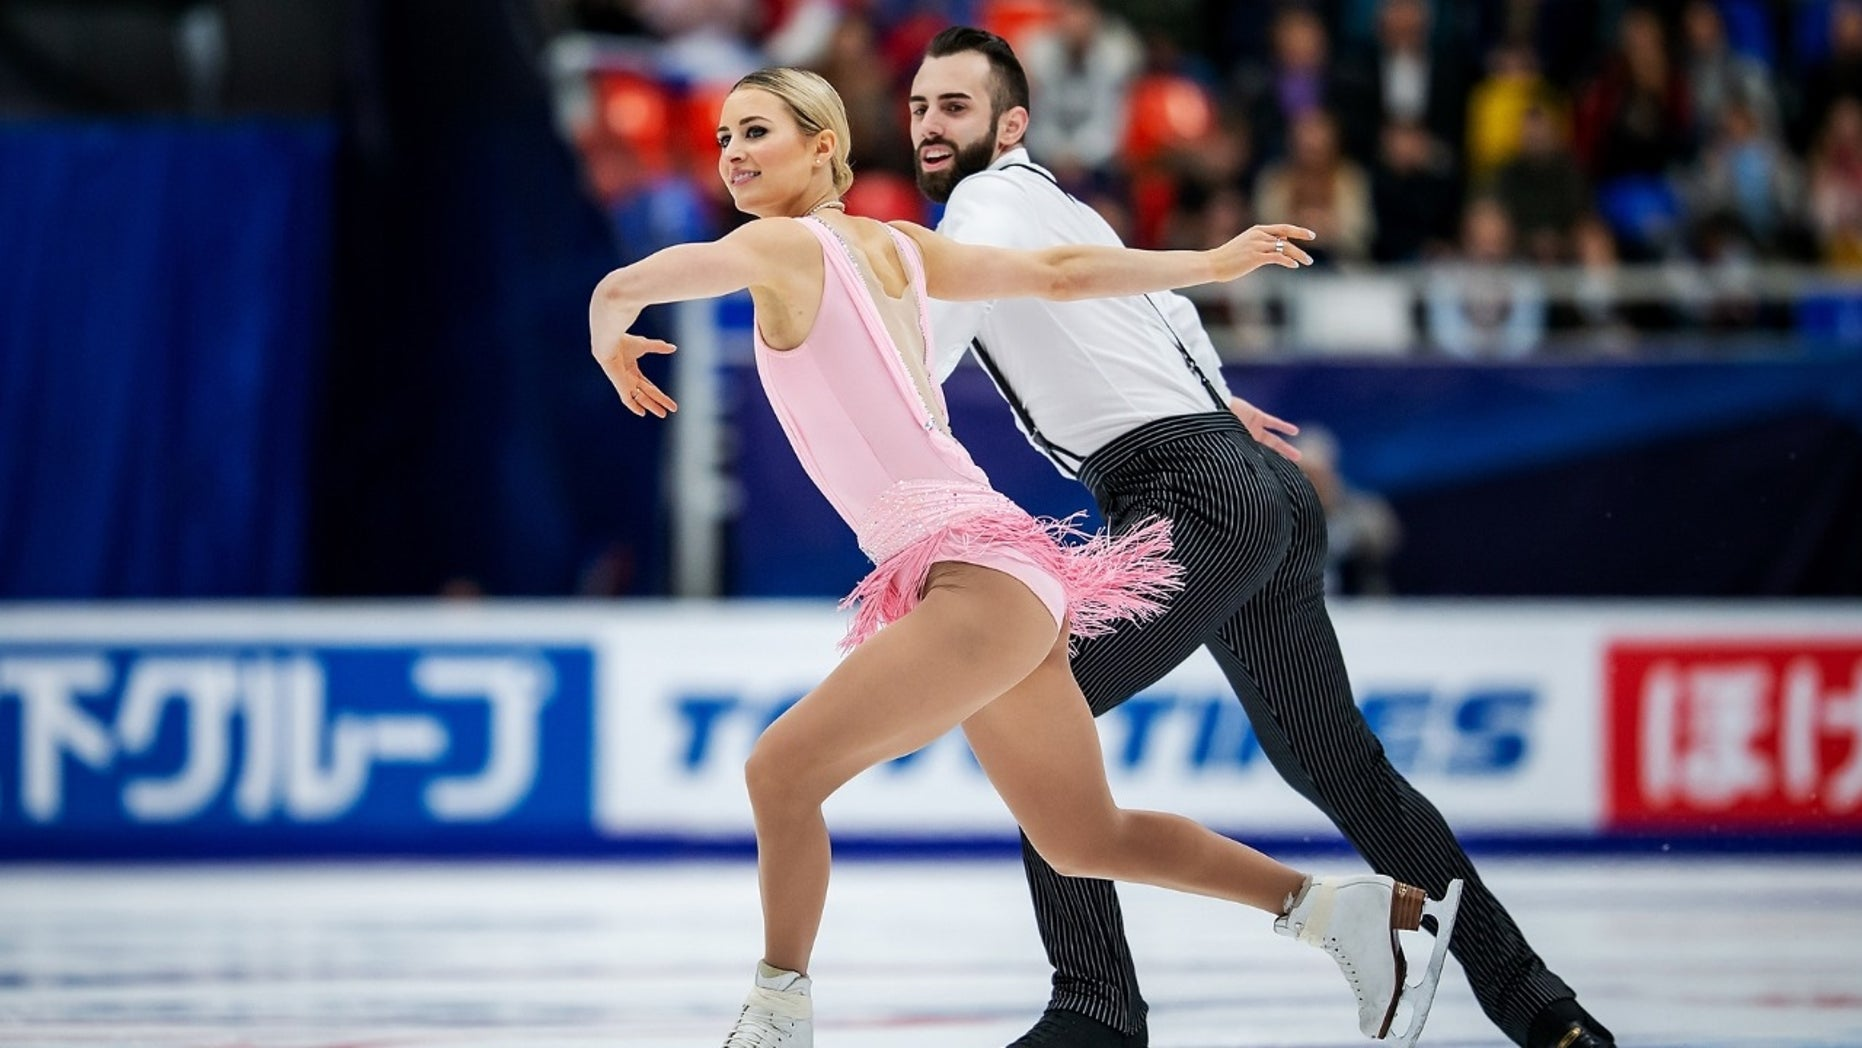 Ashley Cain and Timothy Leduc skating in Moscow, Russia, in November 2018.